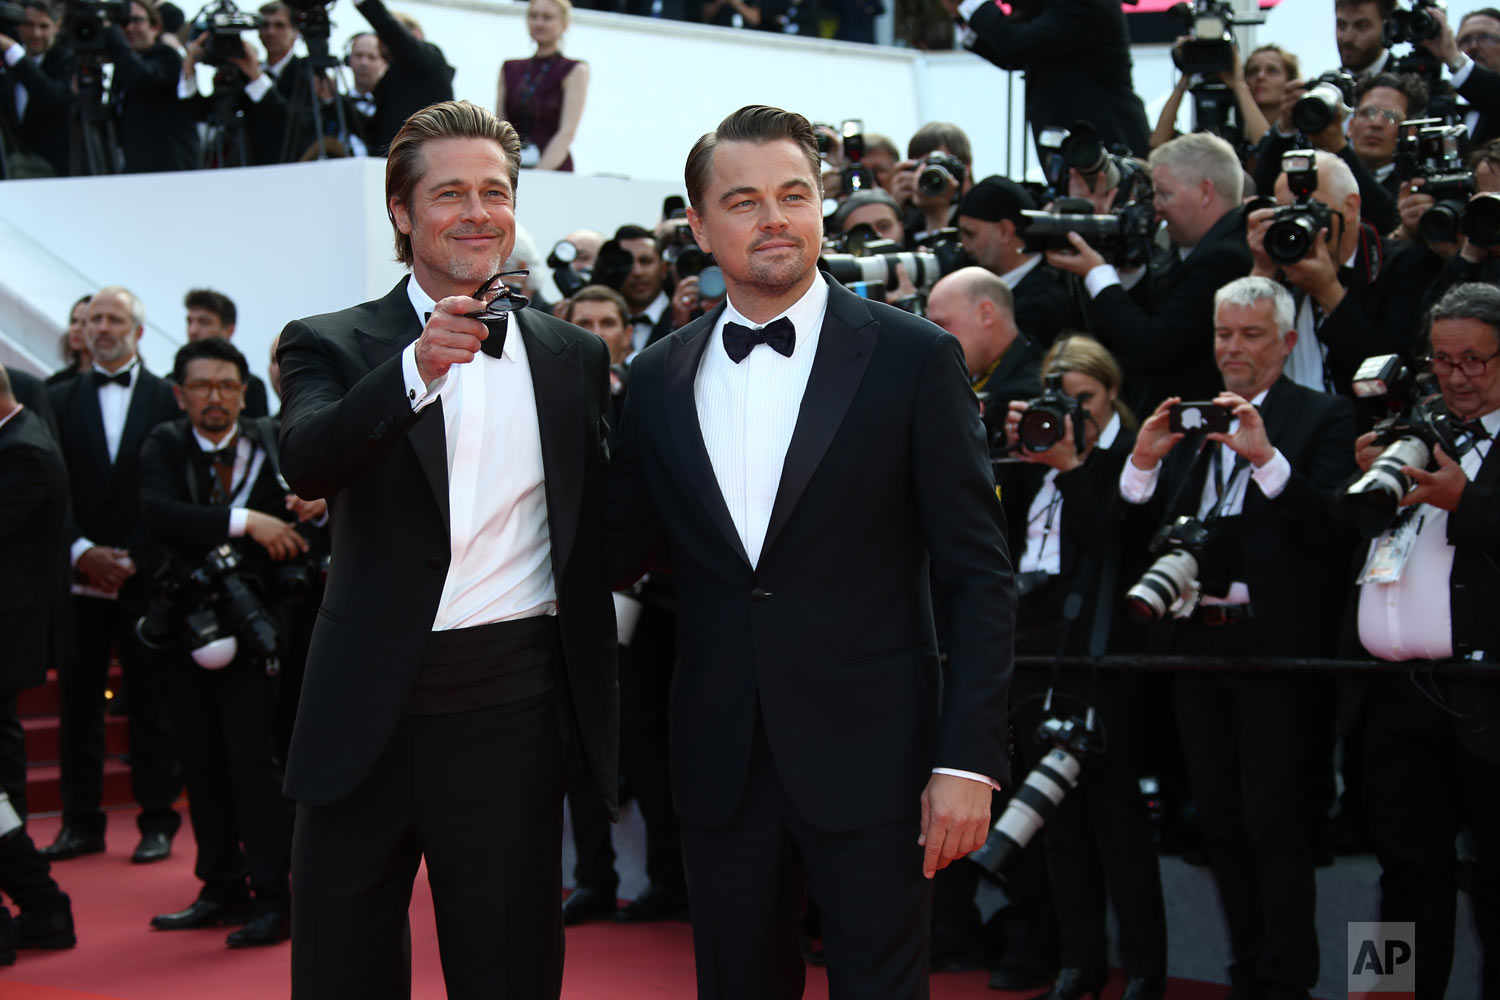 Actors Brad Pitt, left and Leonardo DiCaprio pose for photographers upon arrival at the premiere of the film 'Once Upon a Time in Hollywood' at the 72nd international film festival, Cannes, southern France, May 21, 2019. (Photo by Joel C Ryan/Invision/AP)